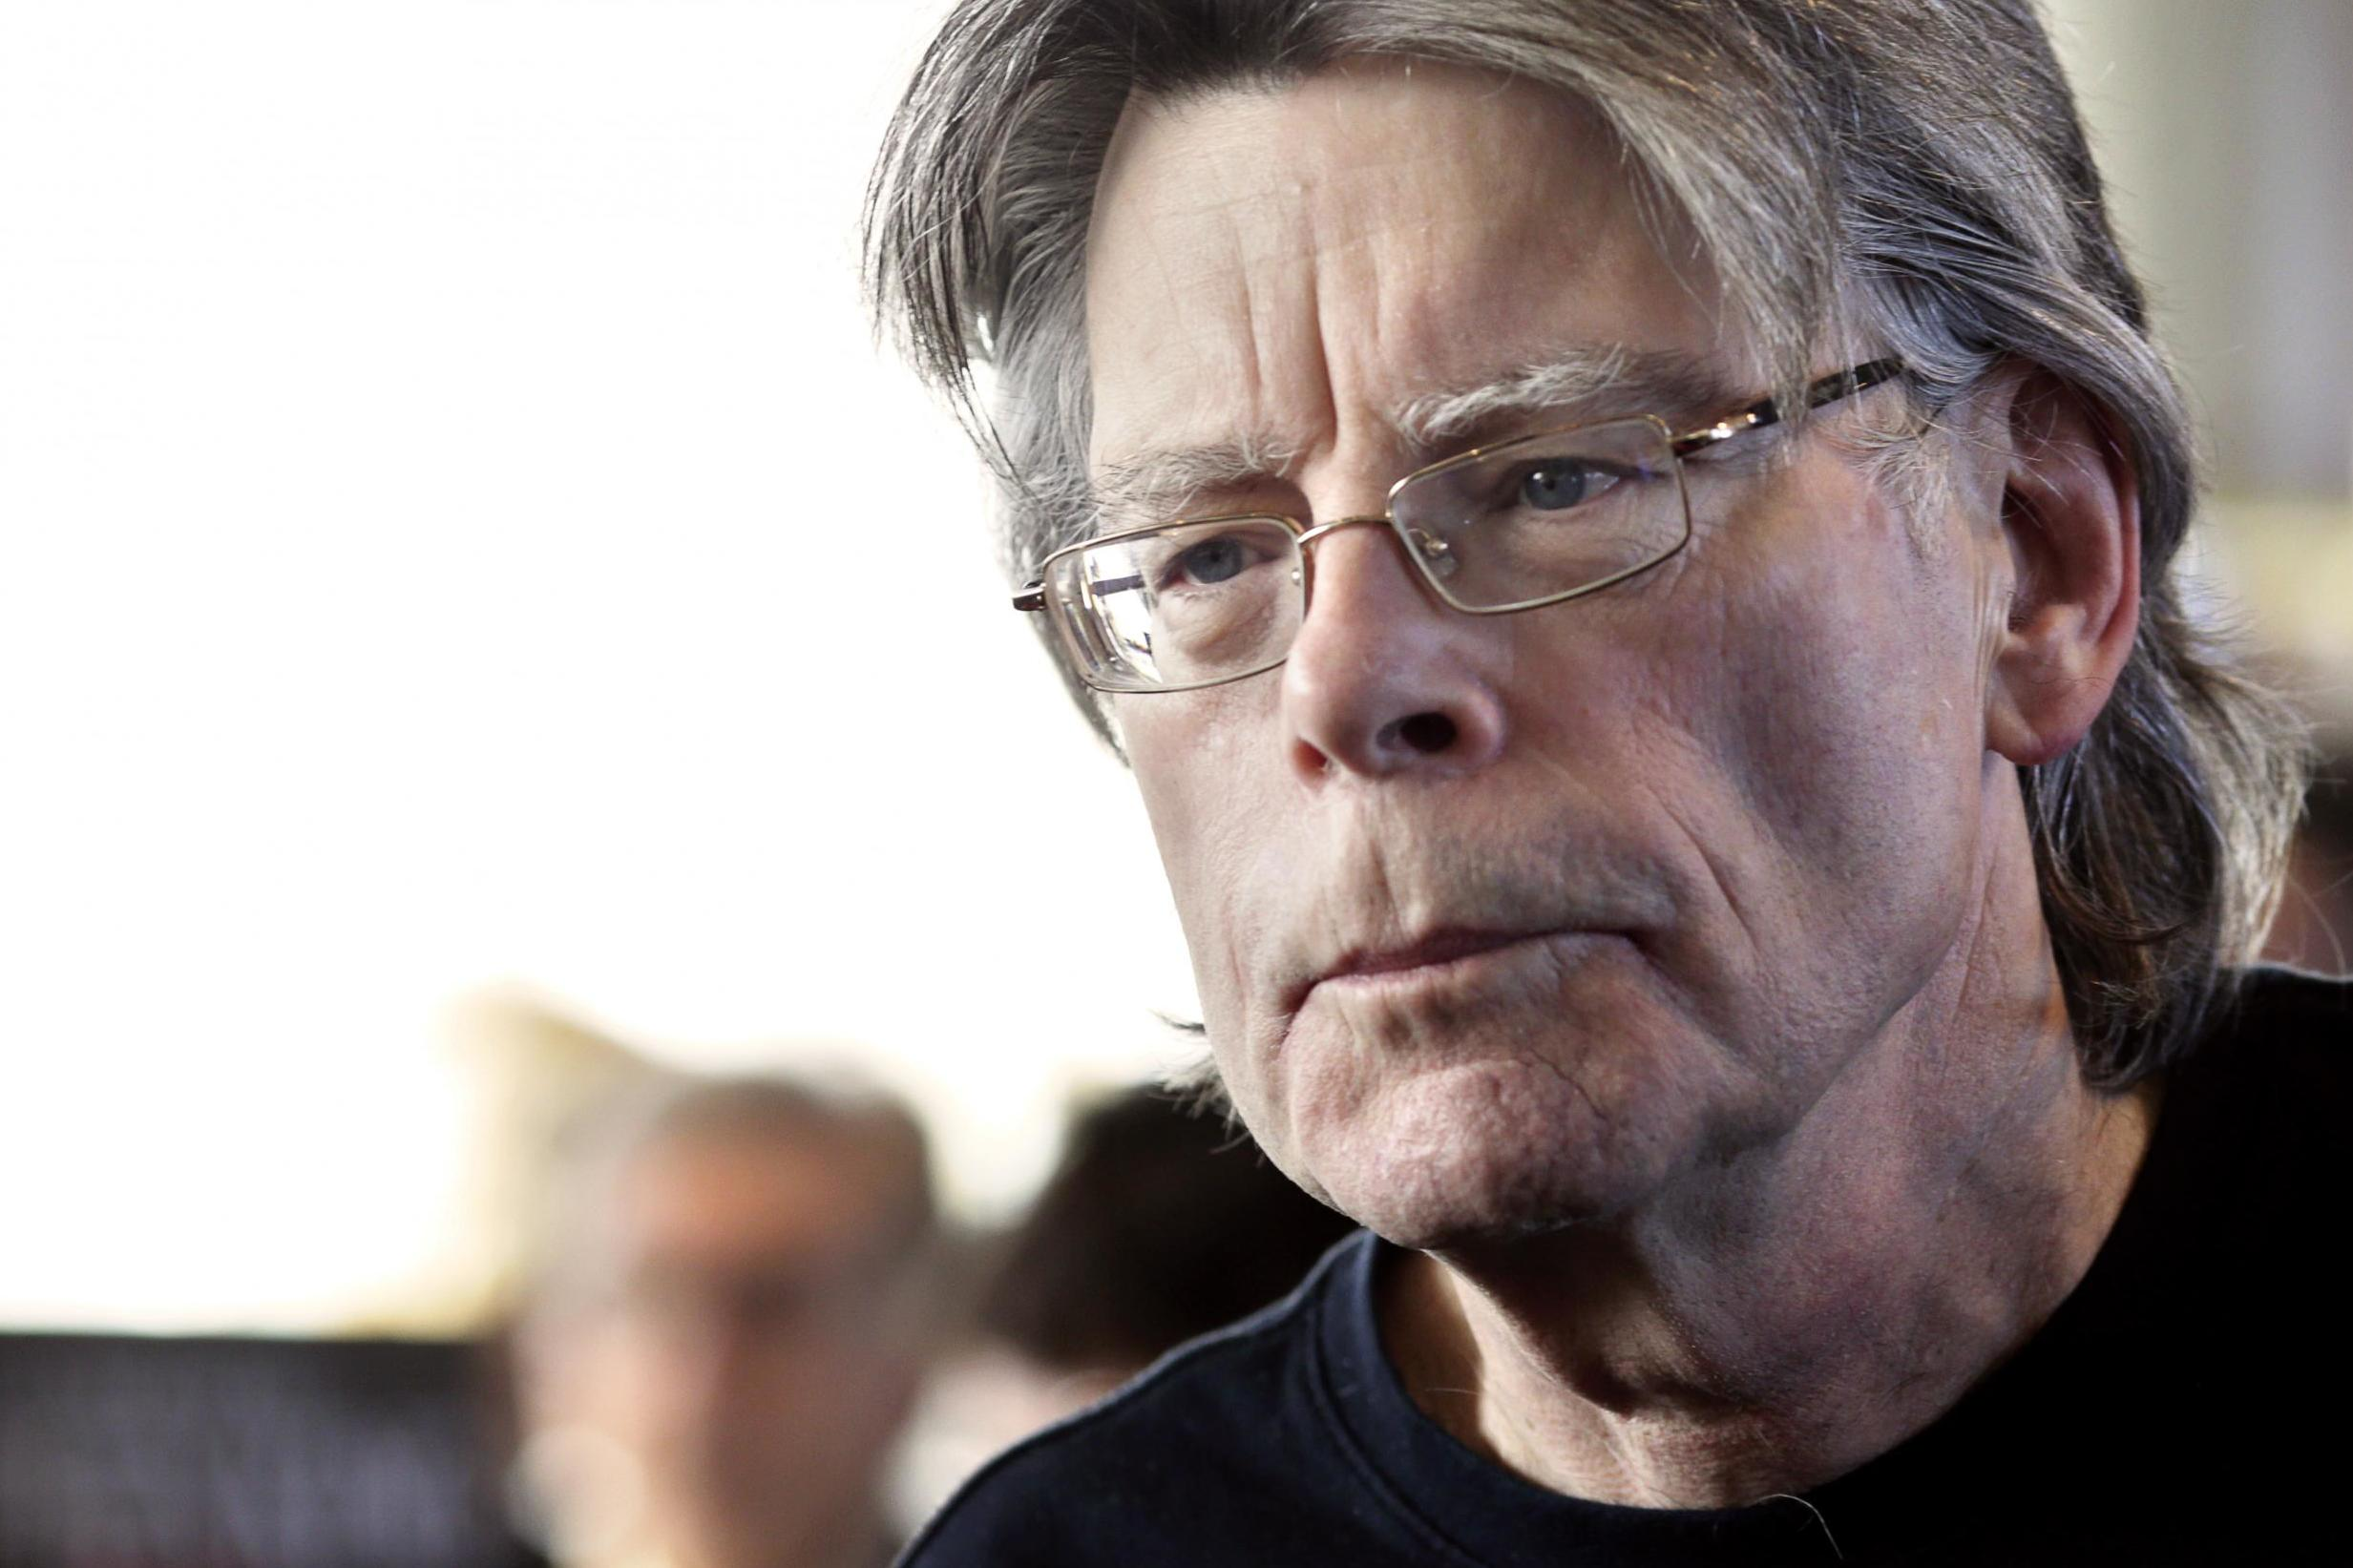 Stephen King responds to criticism of his 'ignorant' comments about diversity in art: The game is 'rigged in favour of white folks'